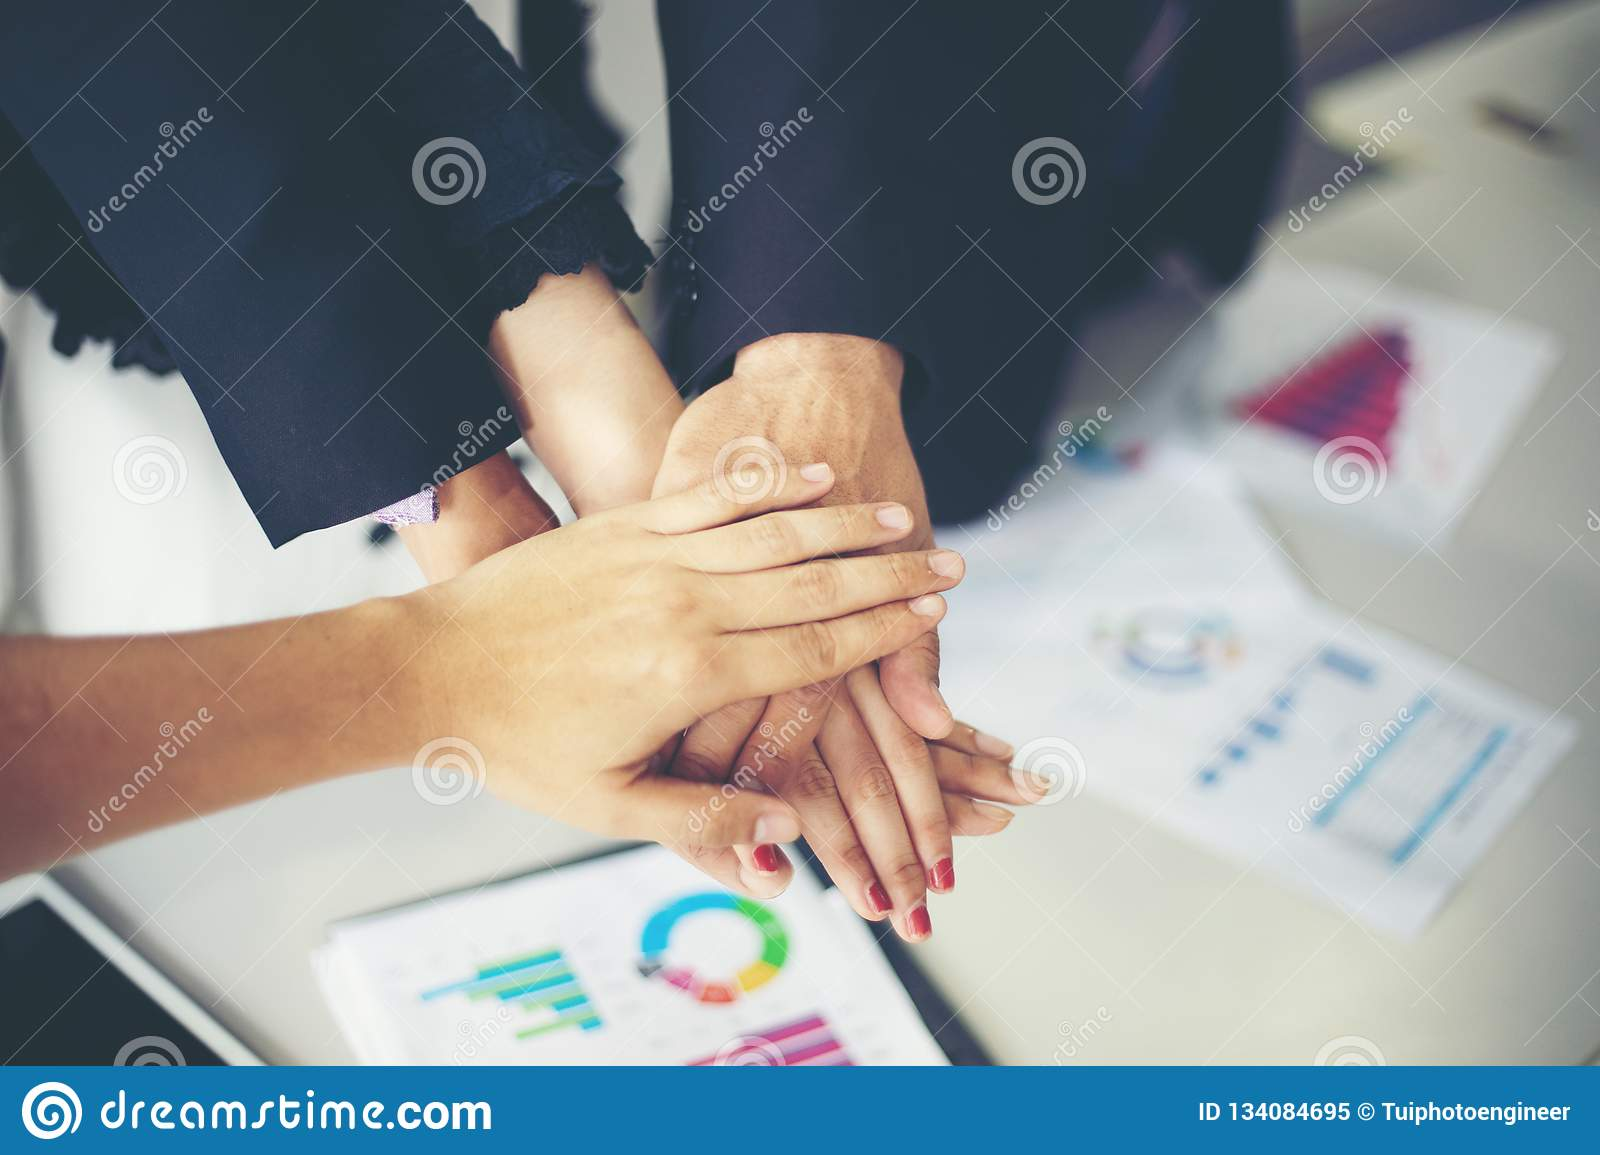 Happy Business people showing team work and giving five after signing agreement or contract with foreign partners in office